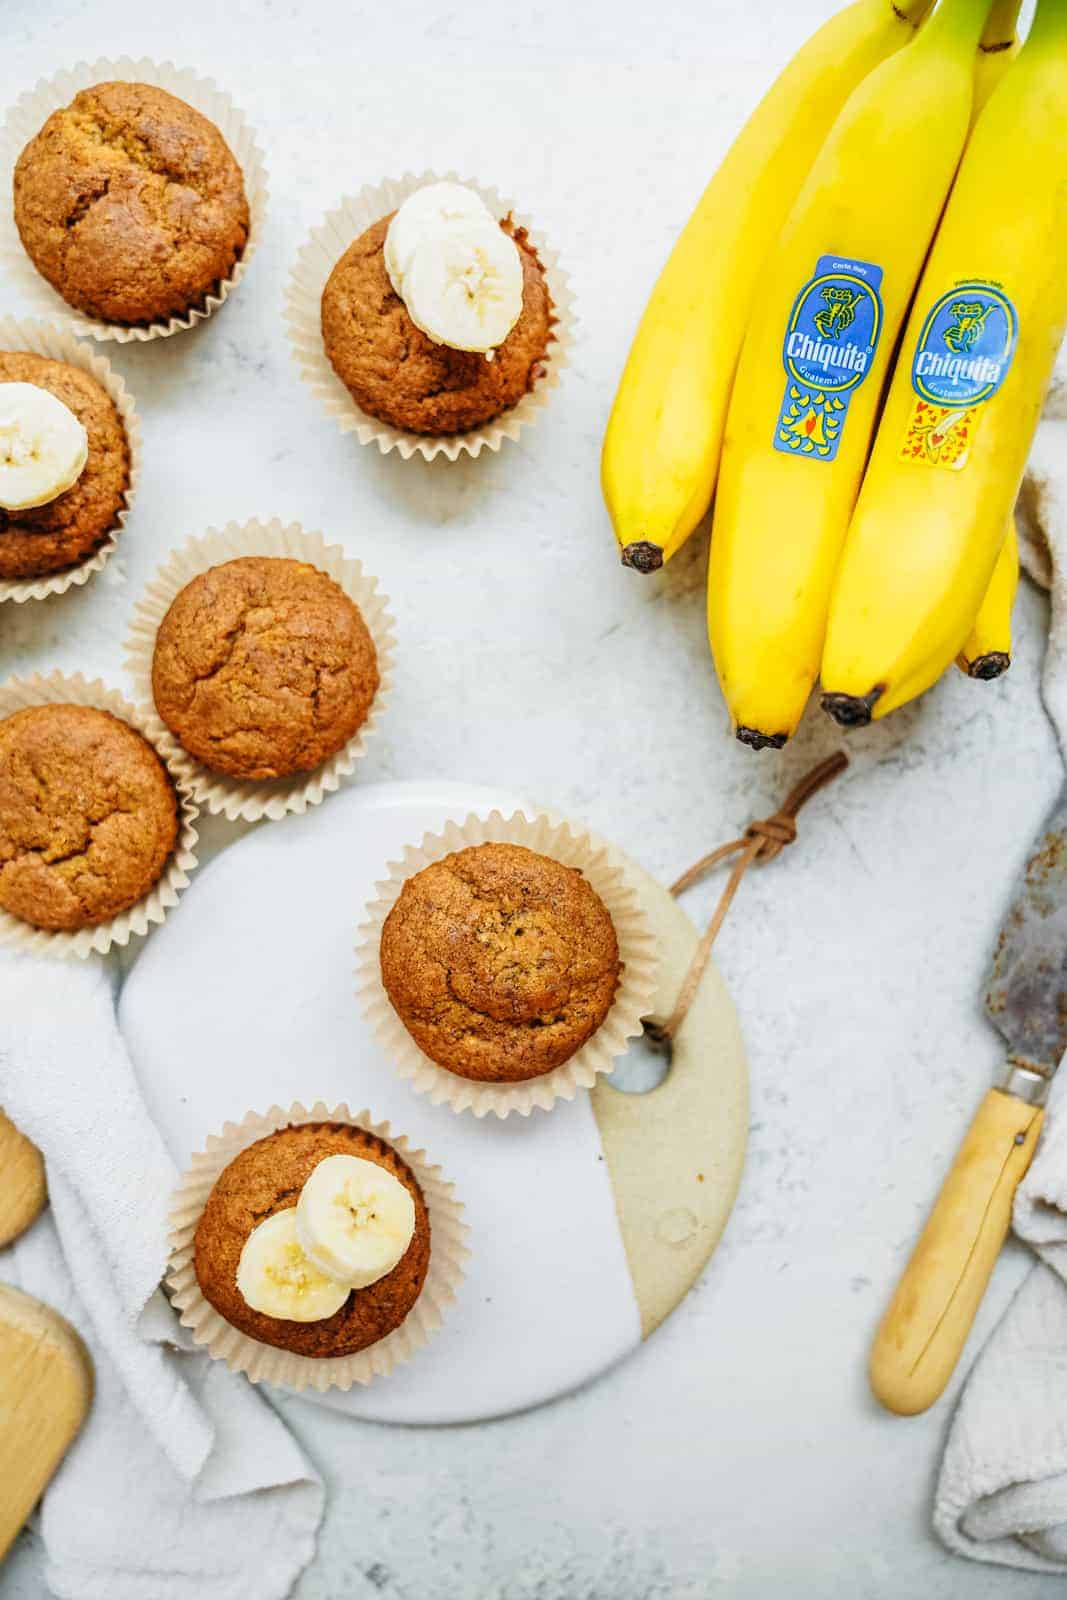 Quick and easy vegan banana bread muffins scattered on countertop with a bunch of fresh yellow bananas.